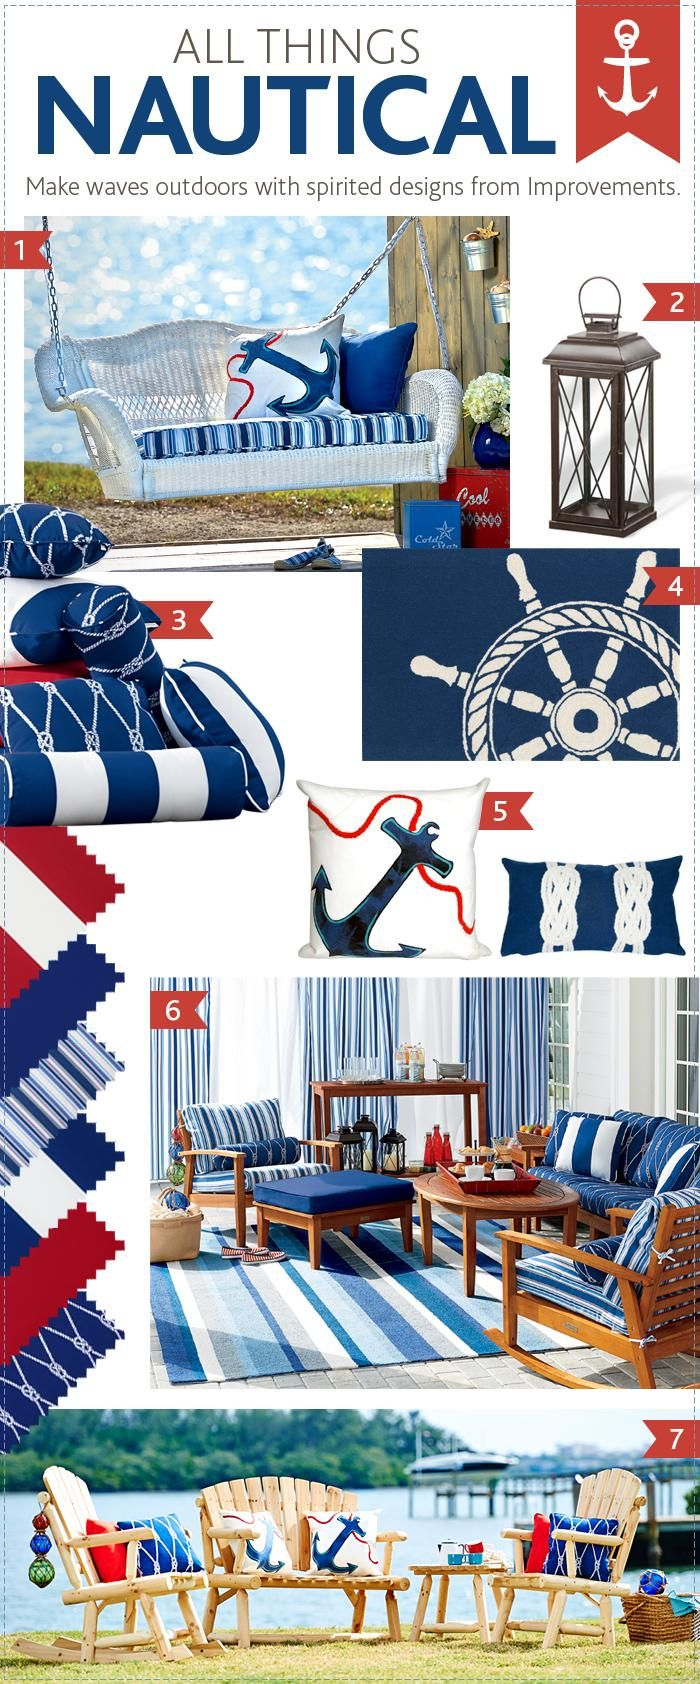 All things nautical. What outdoor decor theme inspires you?All Th Nautical, Nautical Decor, Outdoor Furniture, Outdoor Decor, Things Nautical, Nautical Outdoor, Work Stuff, Furniture Ideas, Decor Theme